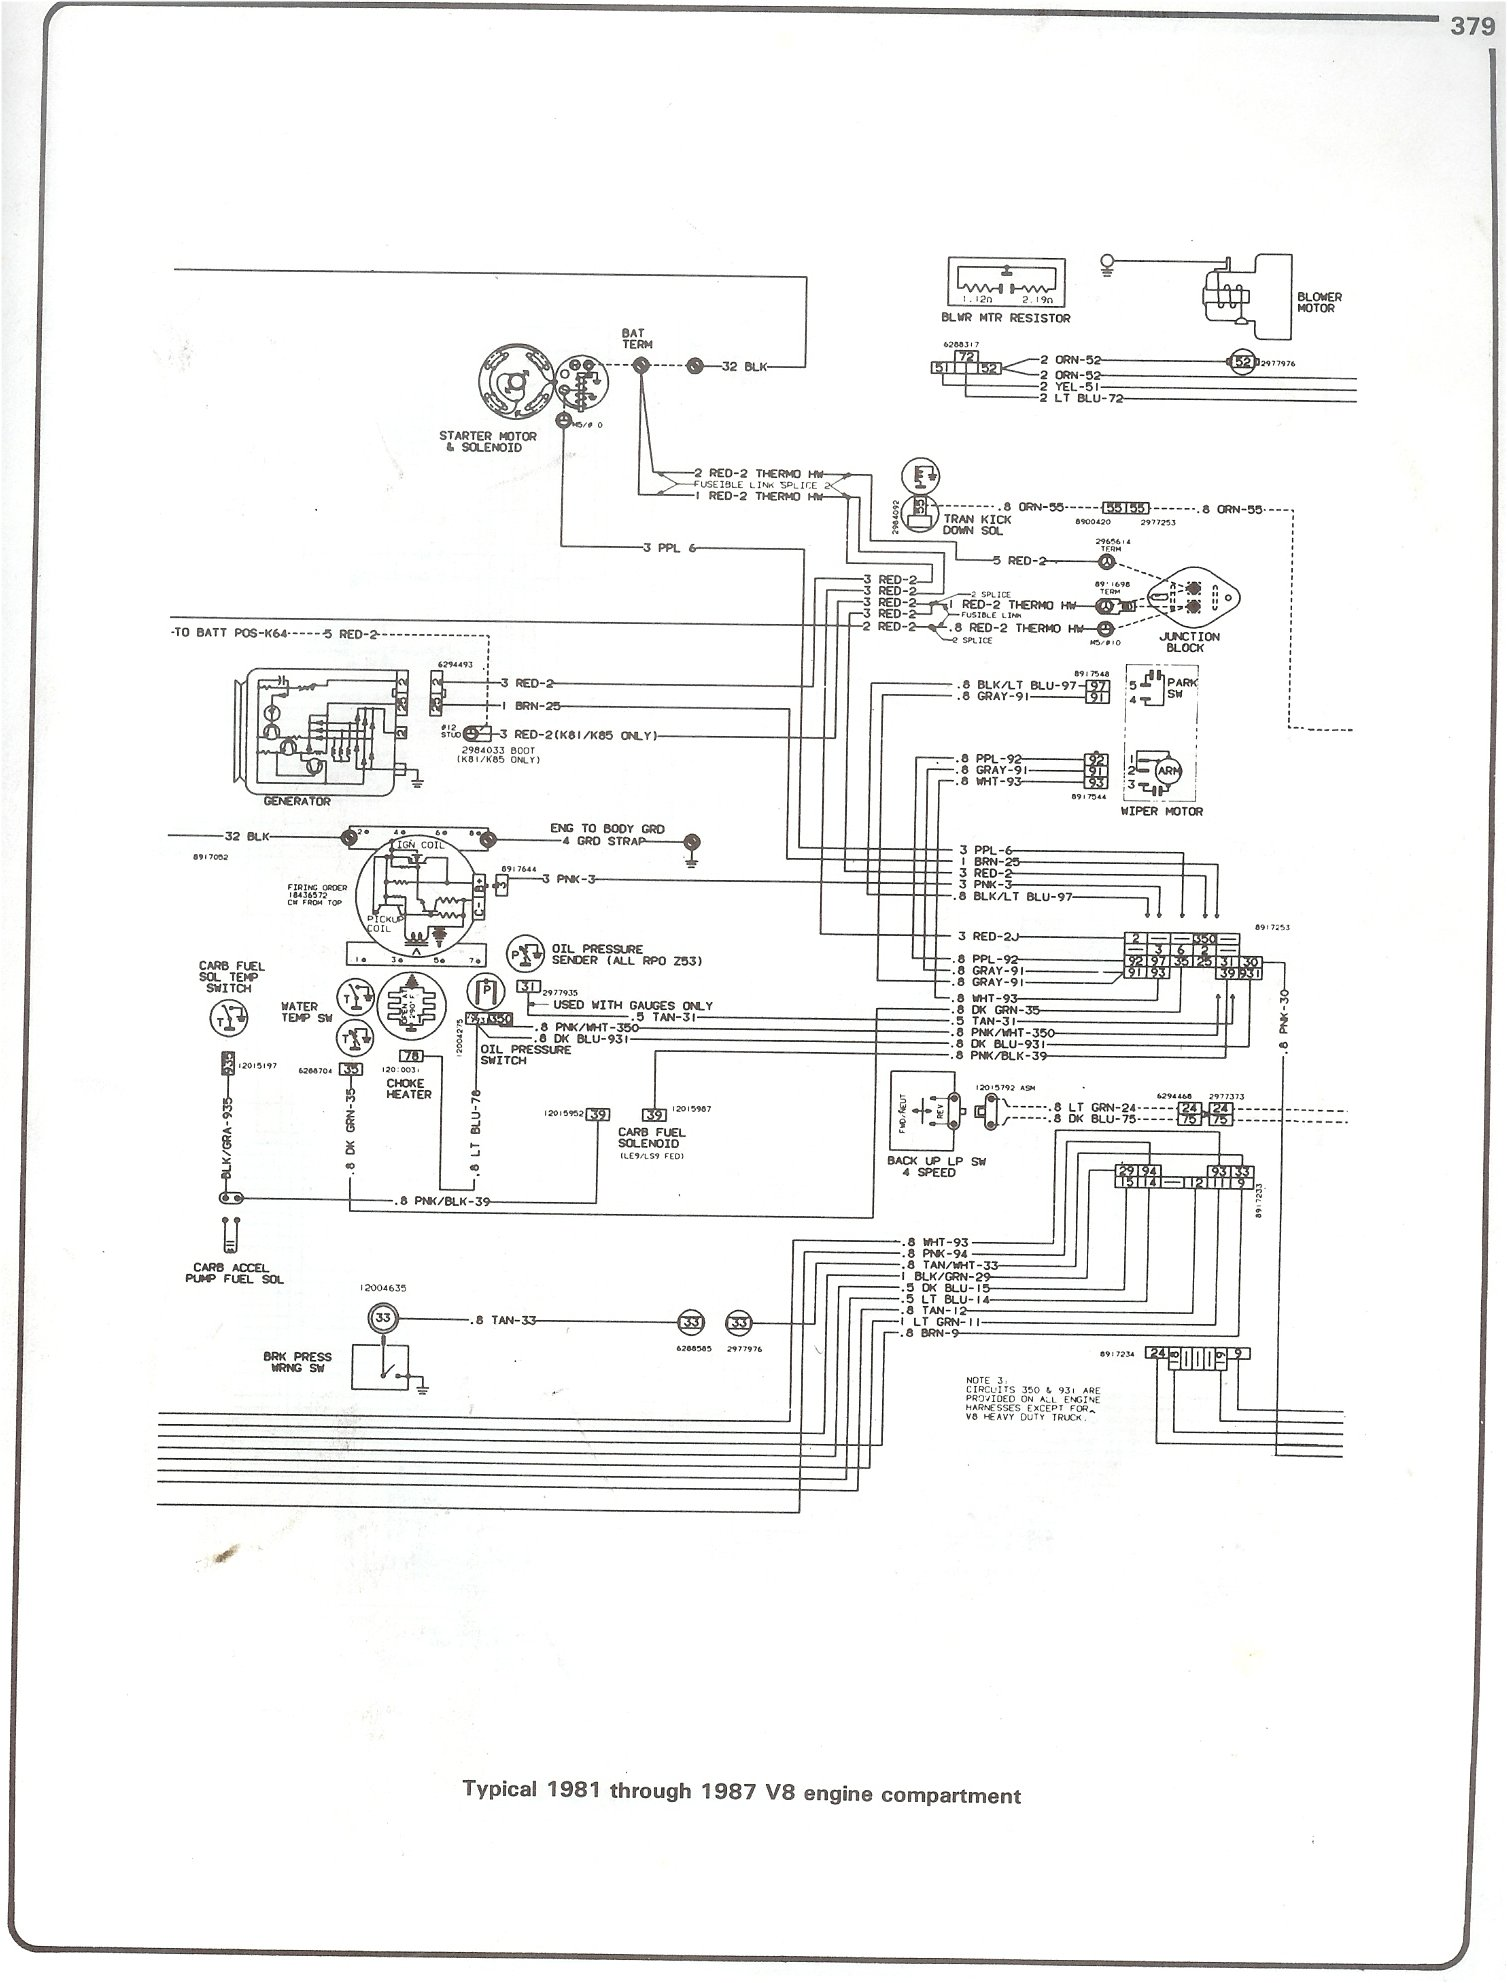 hight resolution of 73 chevy c30 wiring diagram wiring diagram third level 73 chevy monte carlo 1979 chevy wiring